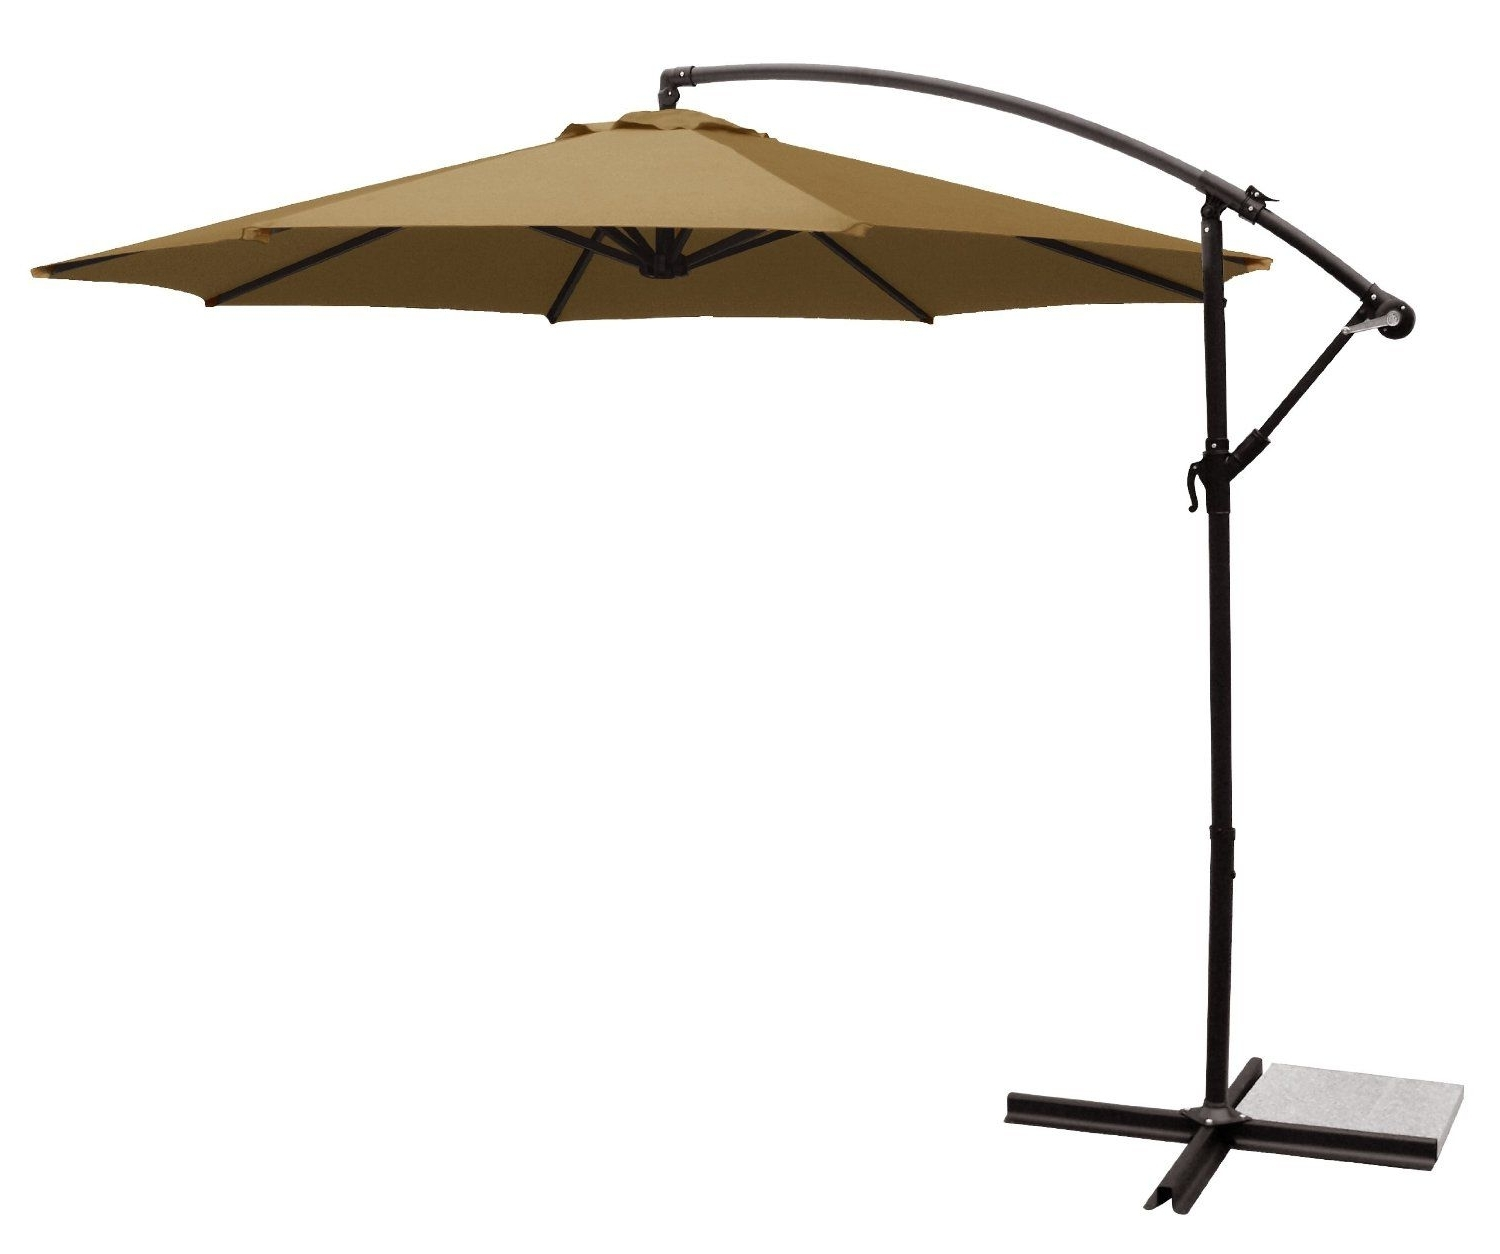 Favorite Amazon : Ace Evert Offset Umbrella 8074, 10 Ft, Polyester, Terra Inside Offset Patio Umbrellas With Base (View 6 of 20)